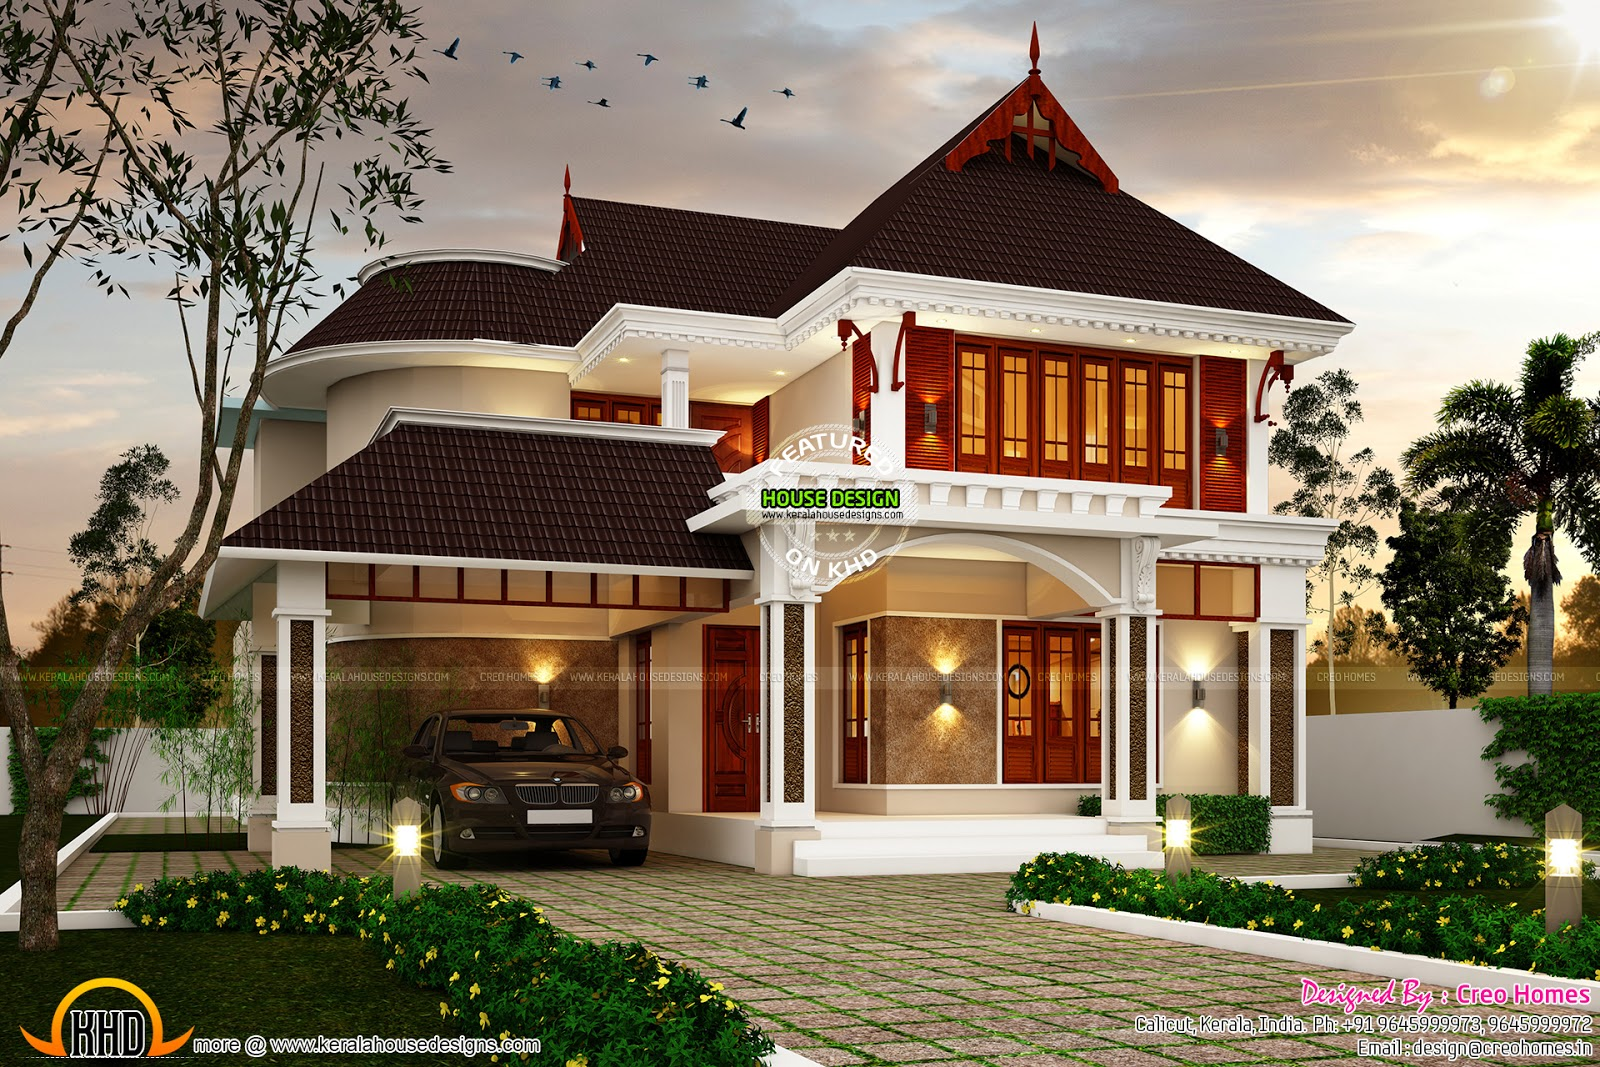 Superb dream house plan kerala home design and floor plans for Dream home house plans